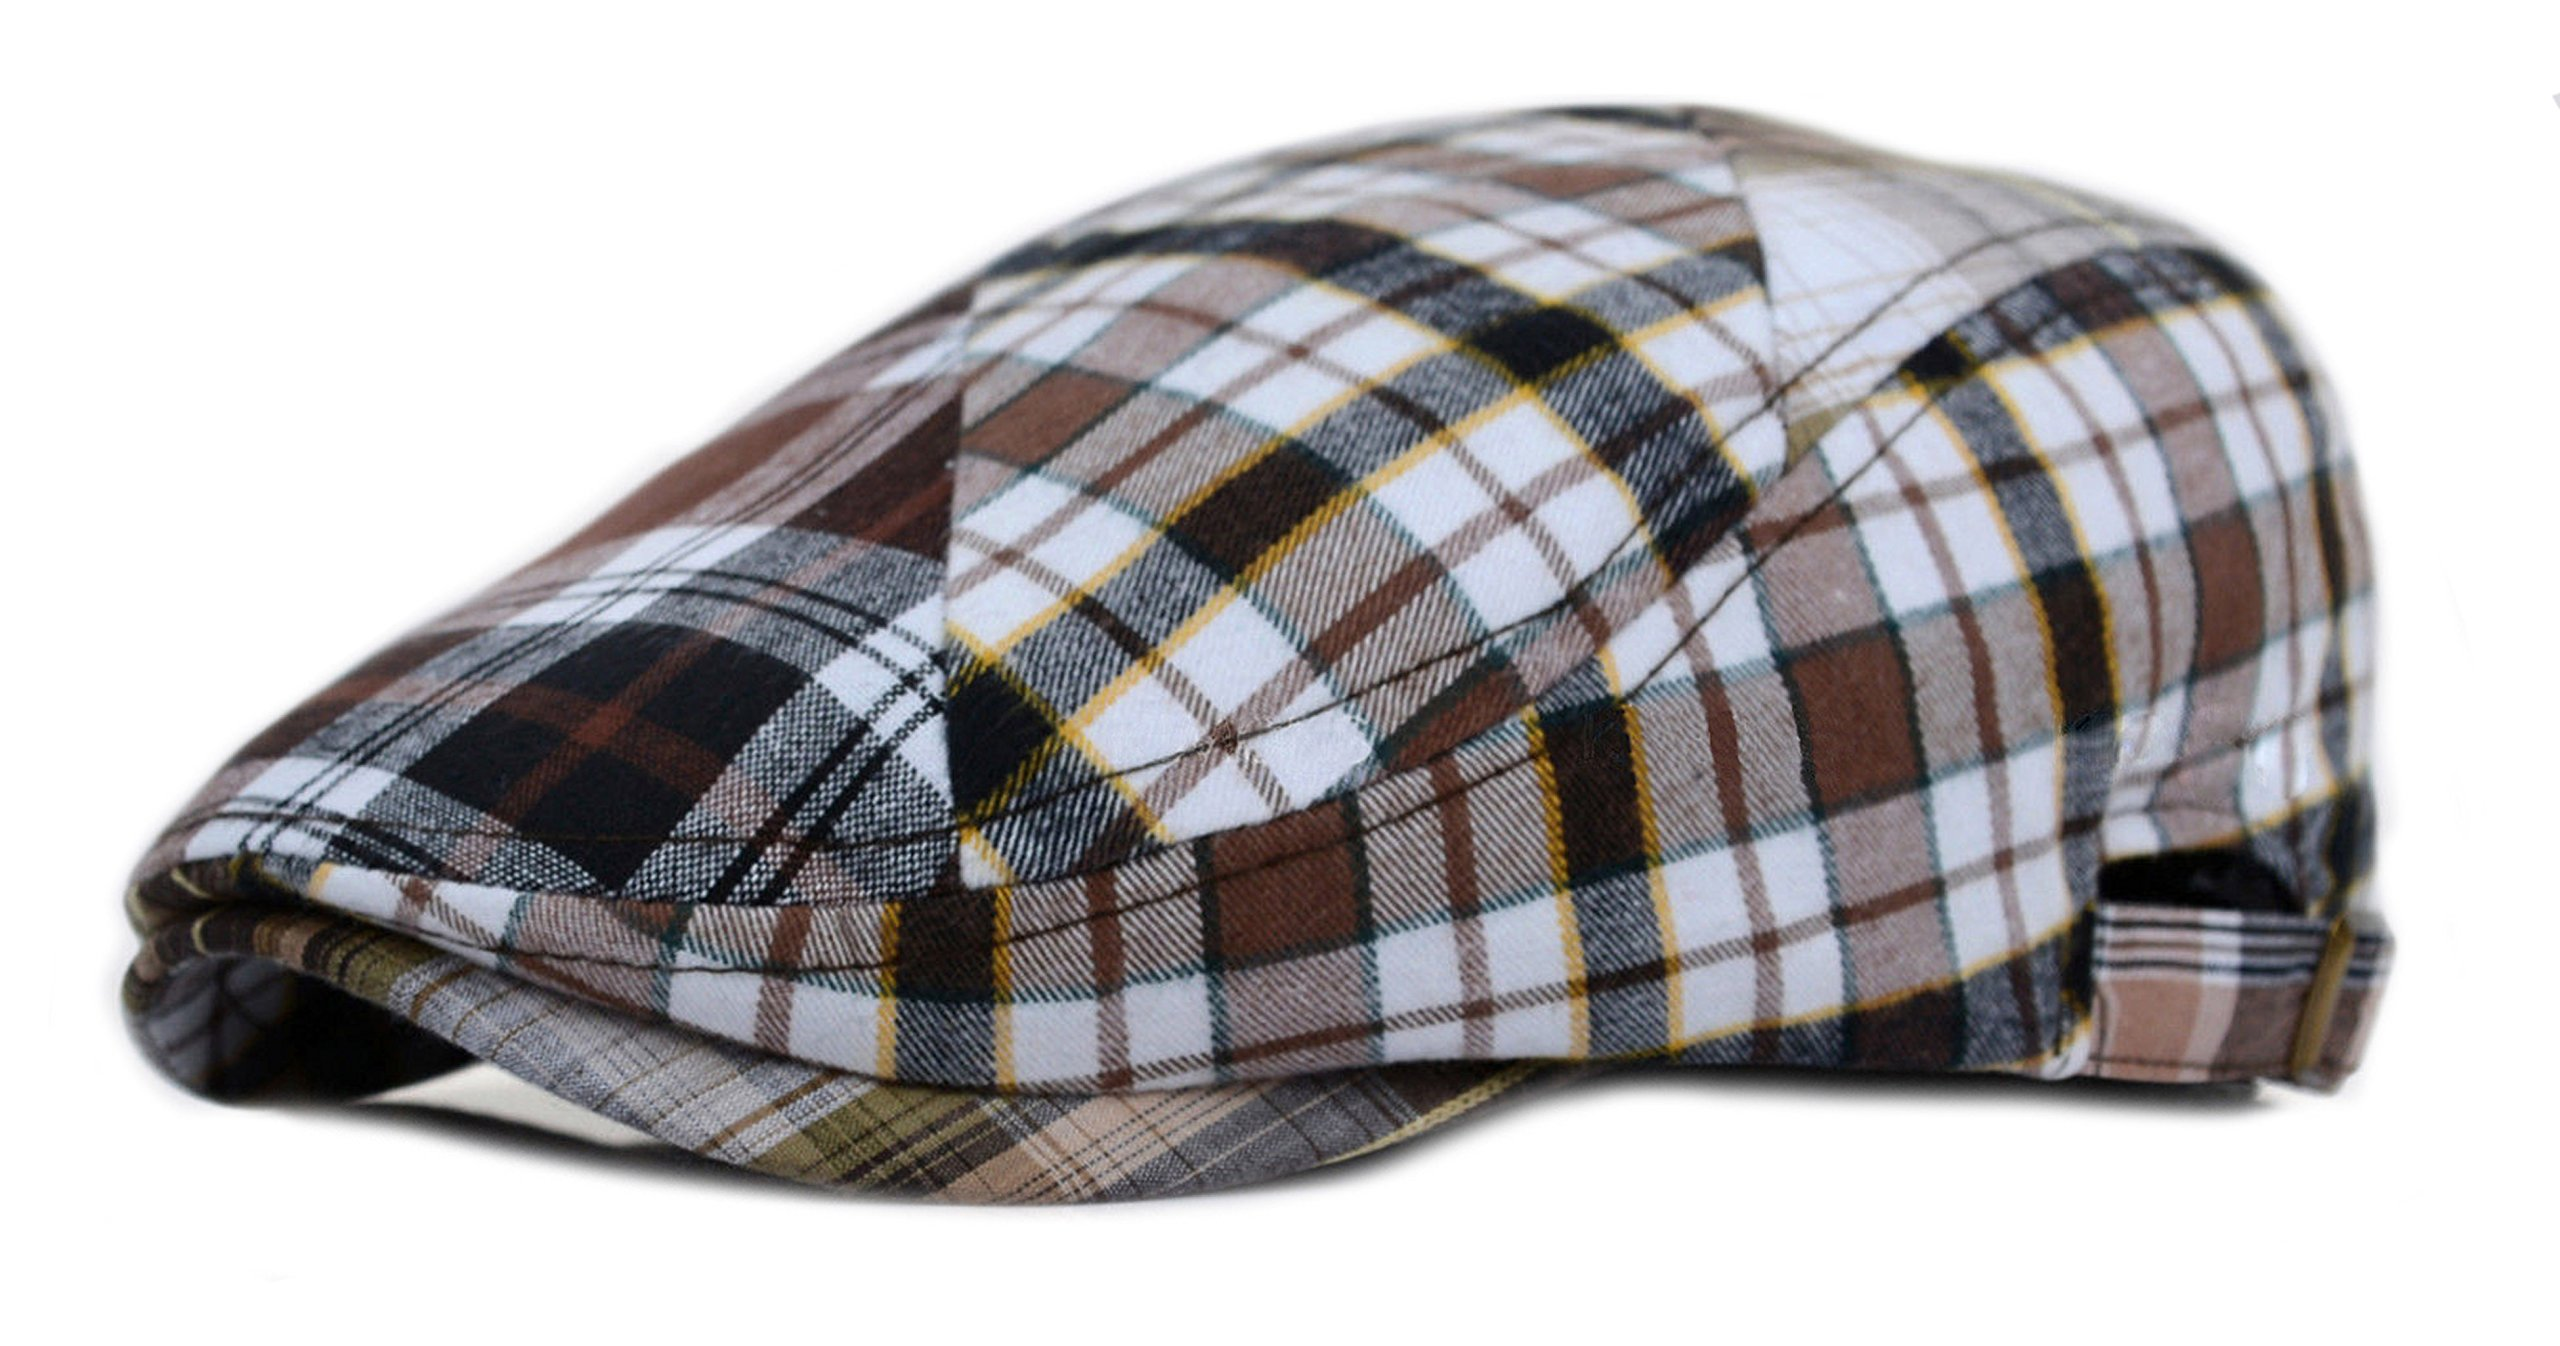 c9adcd4afd5 Deewang Fashion Cotton Cabbie Hat Buckle Golf IVY colorful newsboy Driving  Cap (Multi Color Brown) Apparel